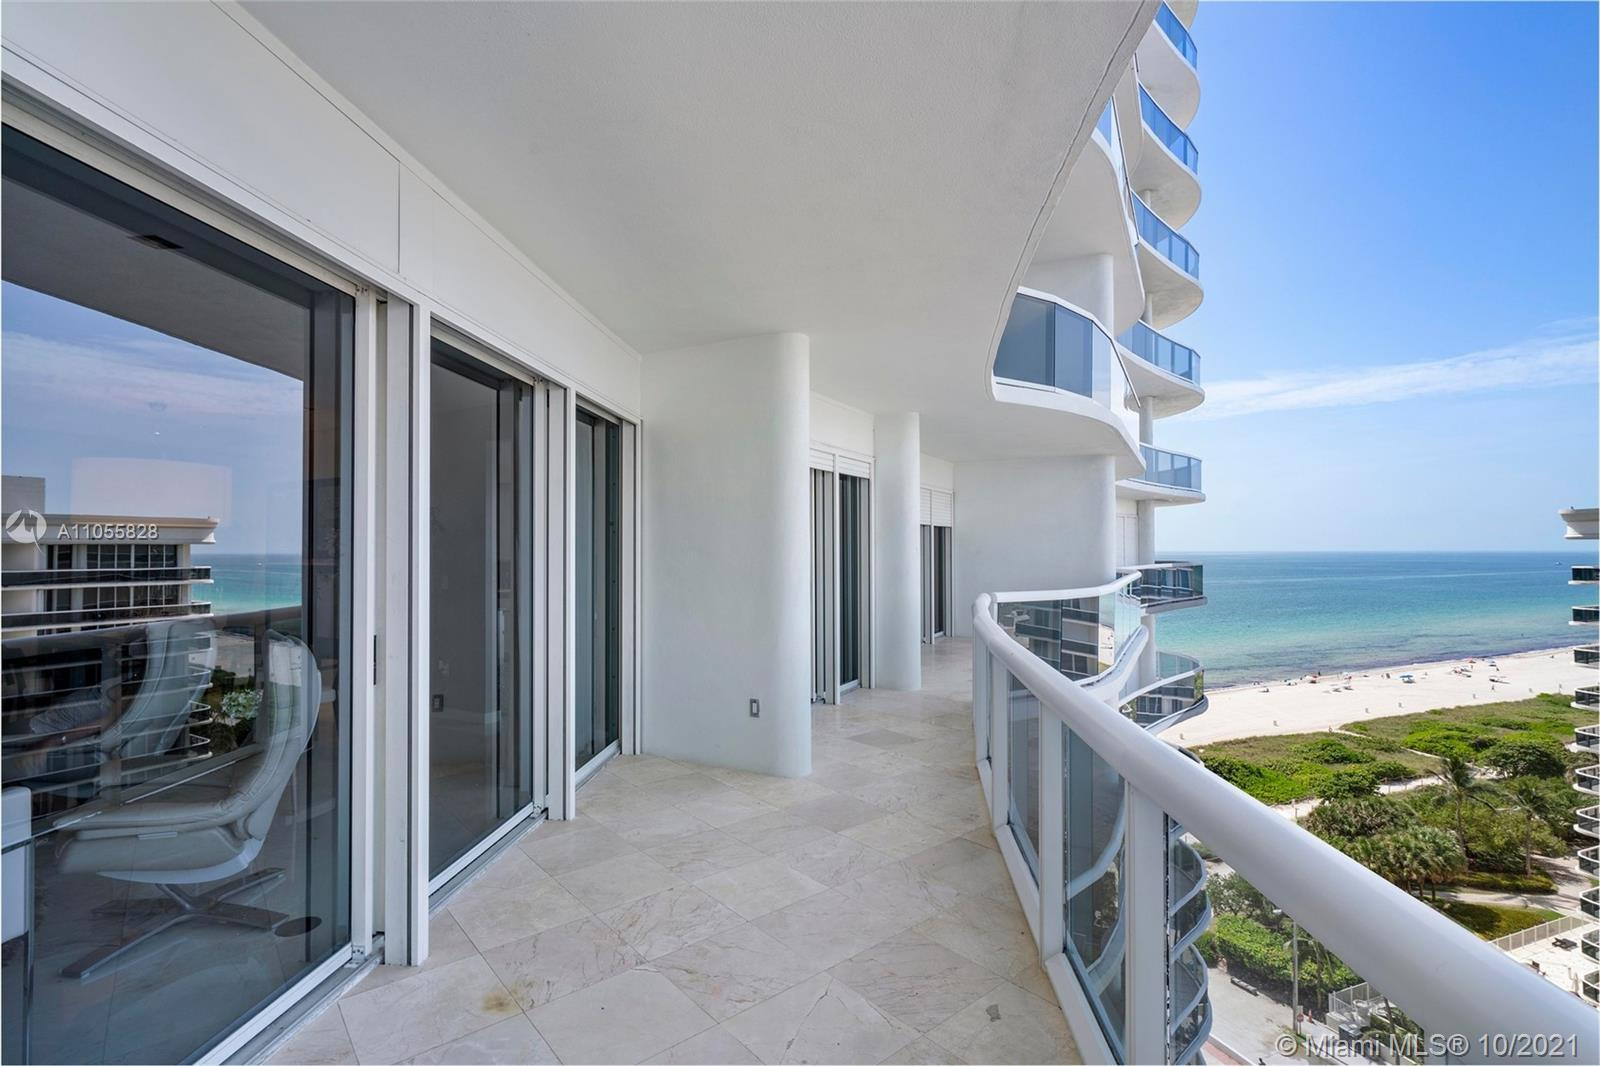 Bright and airy designer upgraded 2 Bedroom / 2.5 Bathroom in full service Majestic Towers. Apartment is equipped for the most discerning client. Enjoy spectacular views of the beach and city from this full service building with great Spa and fitness center, gourmet restaurant, full service pool and private beach. The Majestic Towers is just across from the most exclusive Bal Harbour Shops and Restaurants.